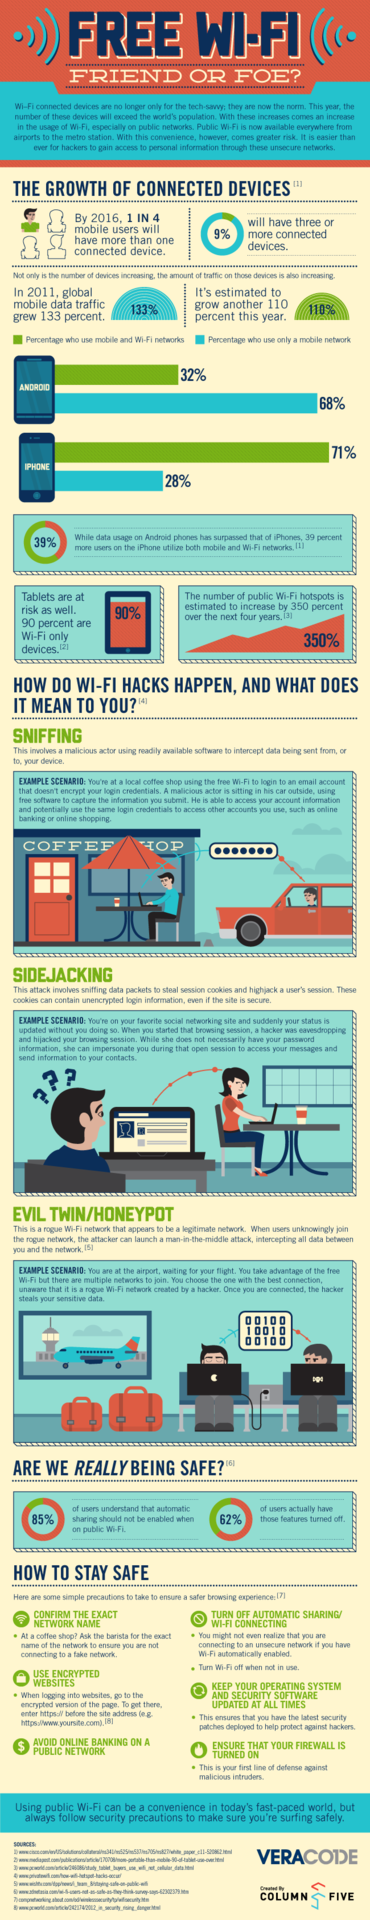 Free Wi-Fi: Friend or Foe? Infographic via Veracode